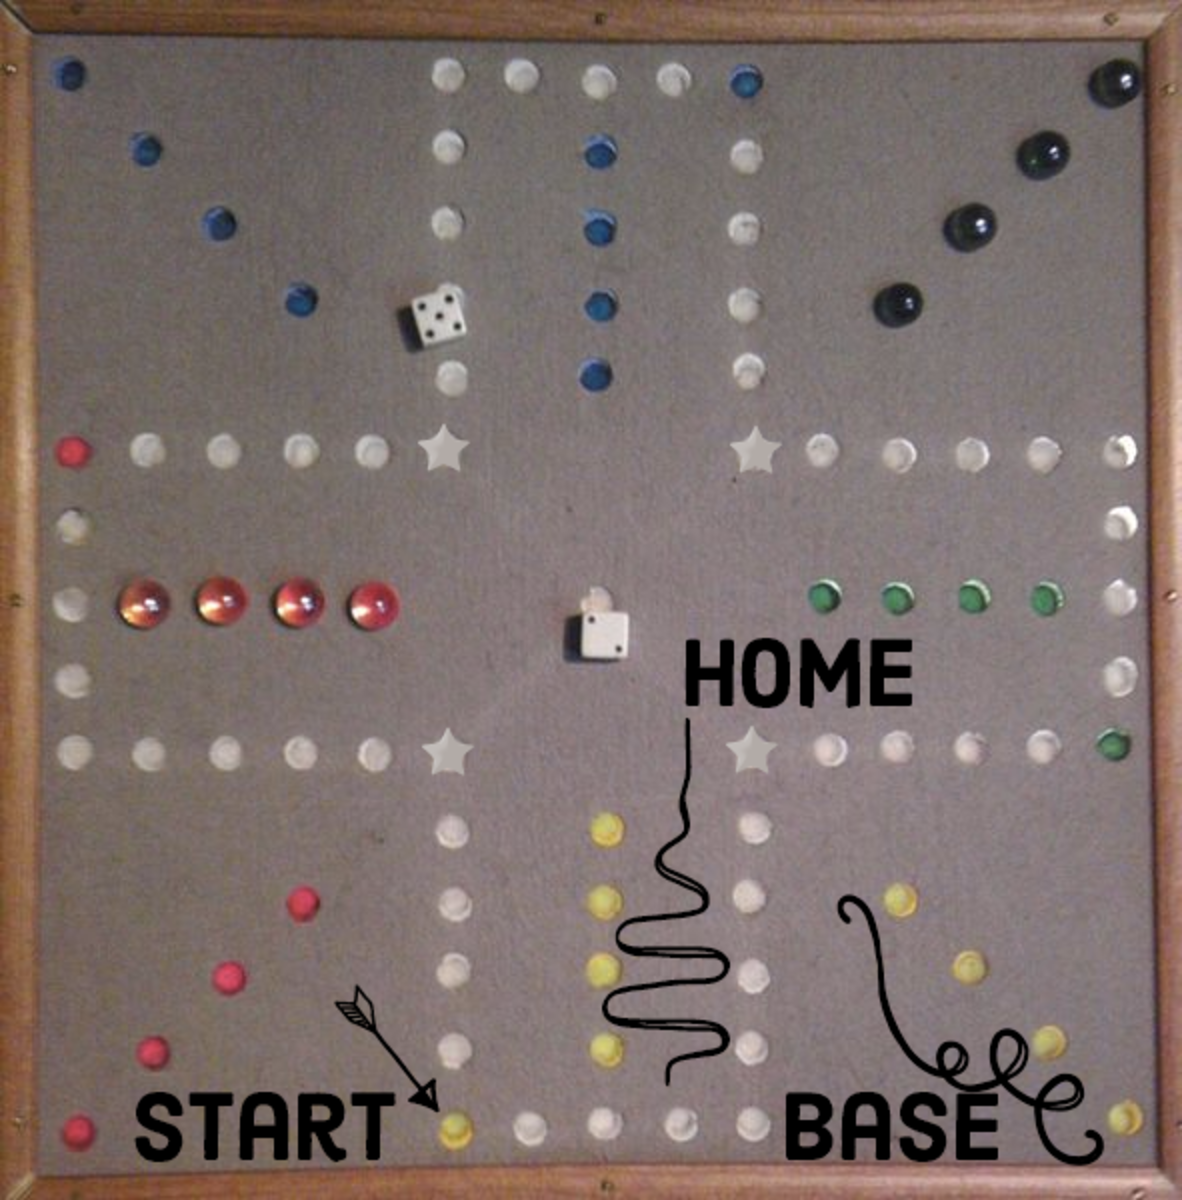 The base row, home row, and start hole are labelled on a homemade Aggravation board. On this board, the red marbles are in the home row, and the green marbles are in the base row.